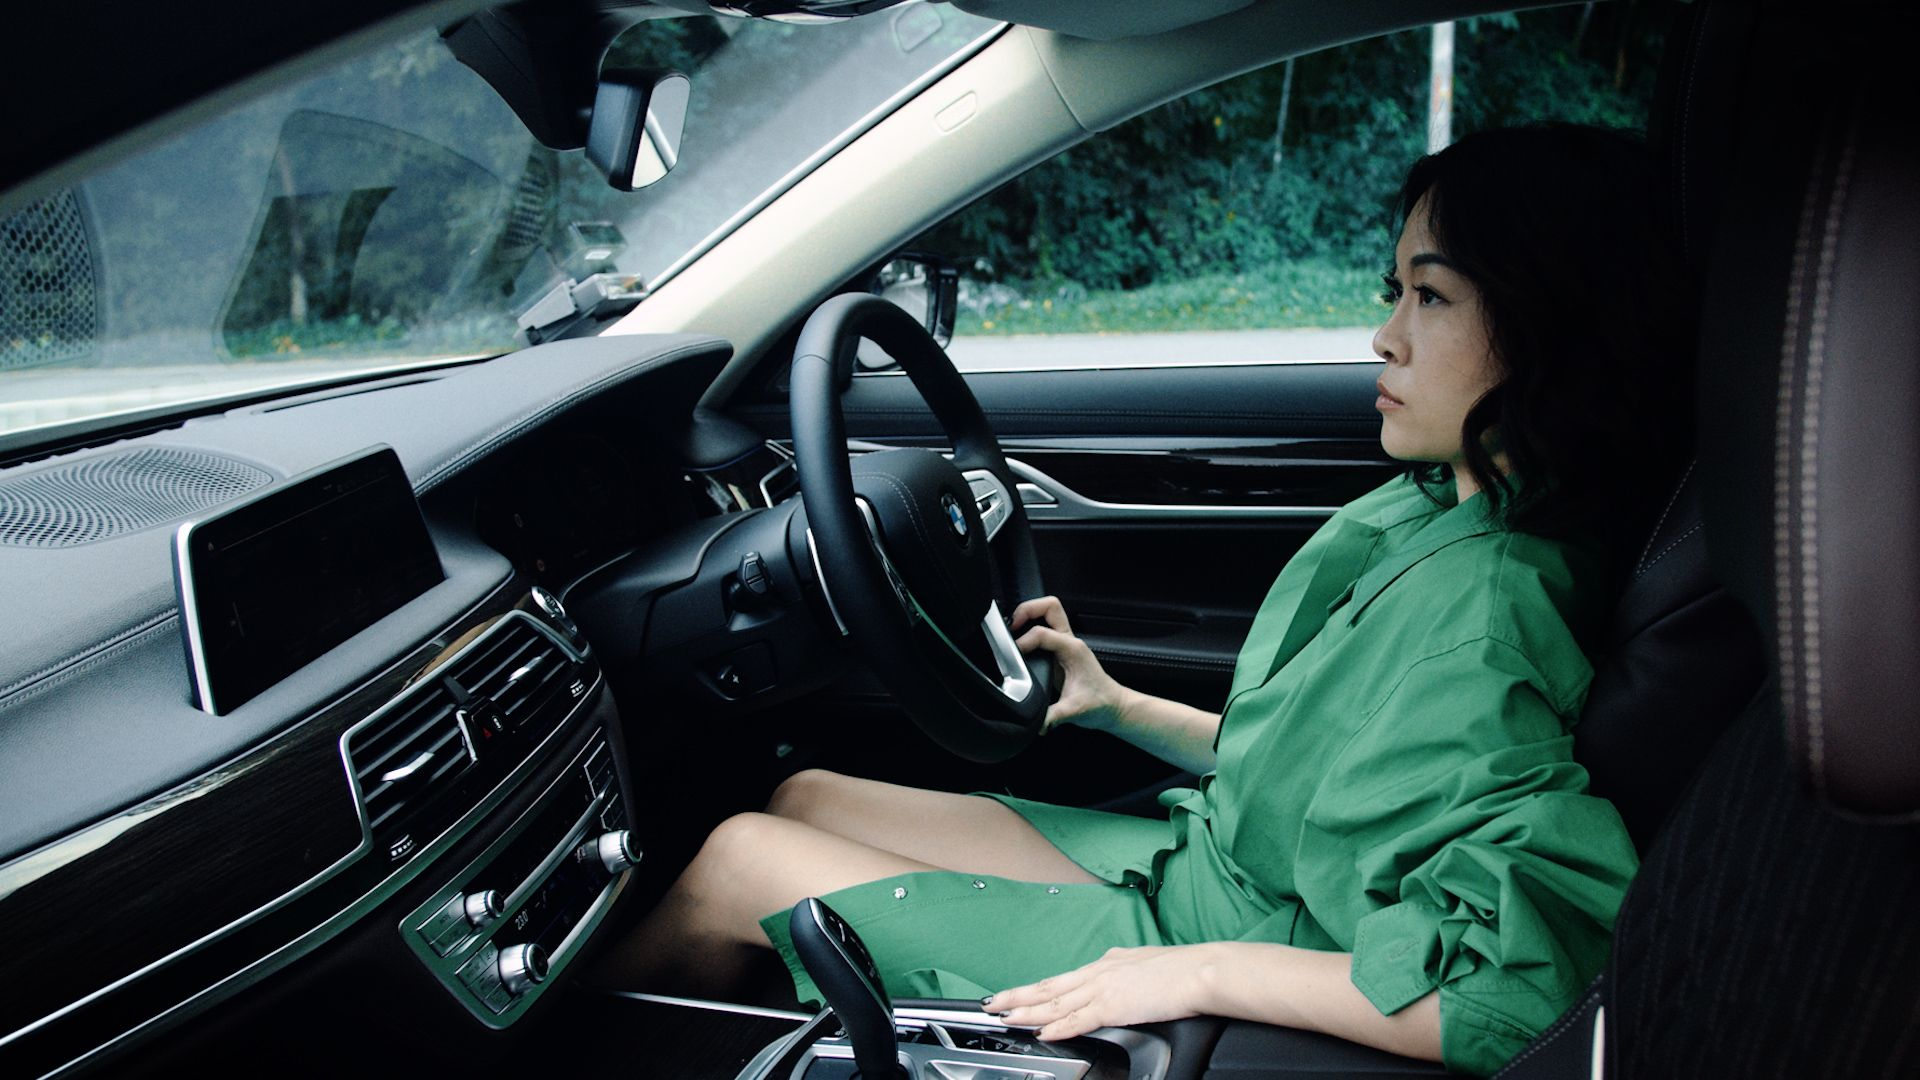 Sonia Ong Connects With the BMW 7 Series' Strength of Character